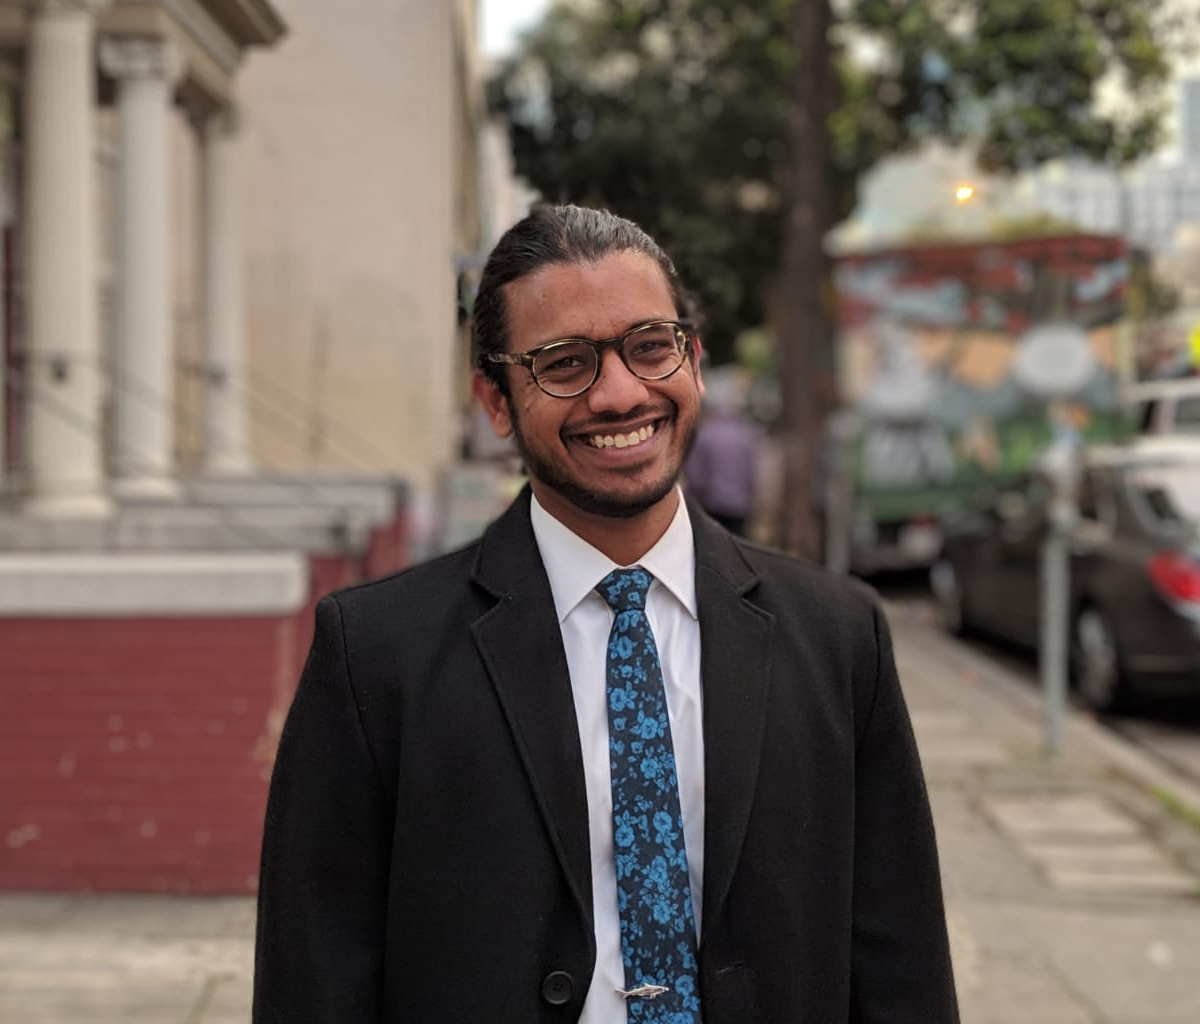 aBOUT US - Our founder and CEO, Shariq Mobin, obtained his PhD from UC Berkeley in auditory neuroscience and machine learning. Over the last five years he's been working on algorithms that specifically solve this noisy restaurant problem.